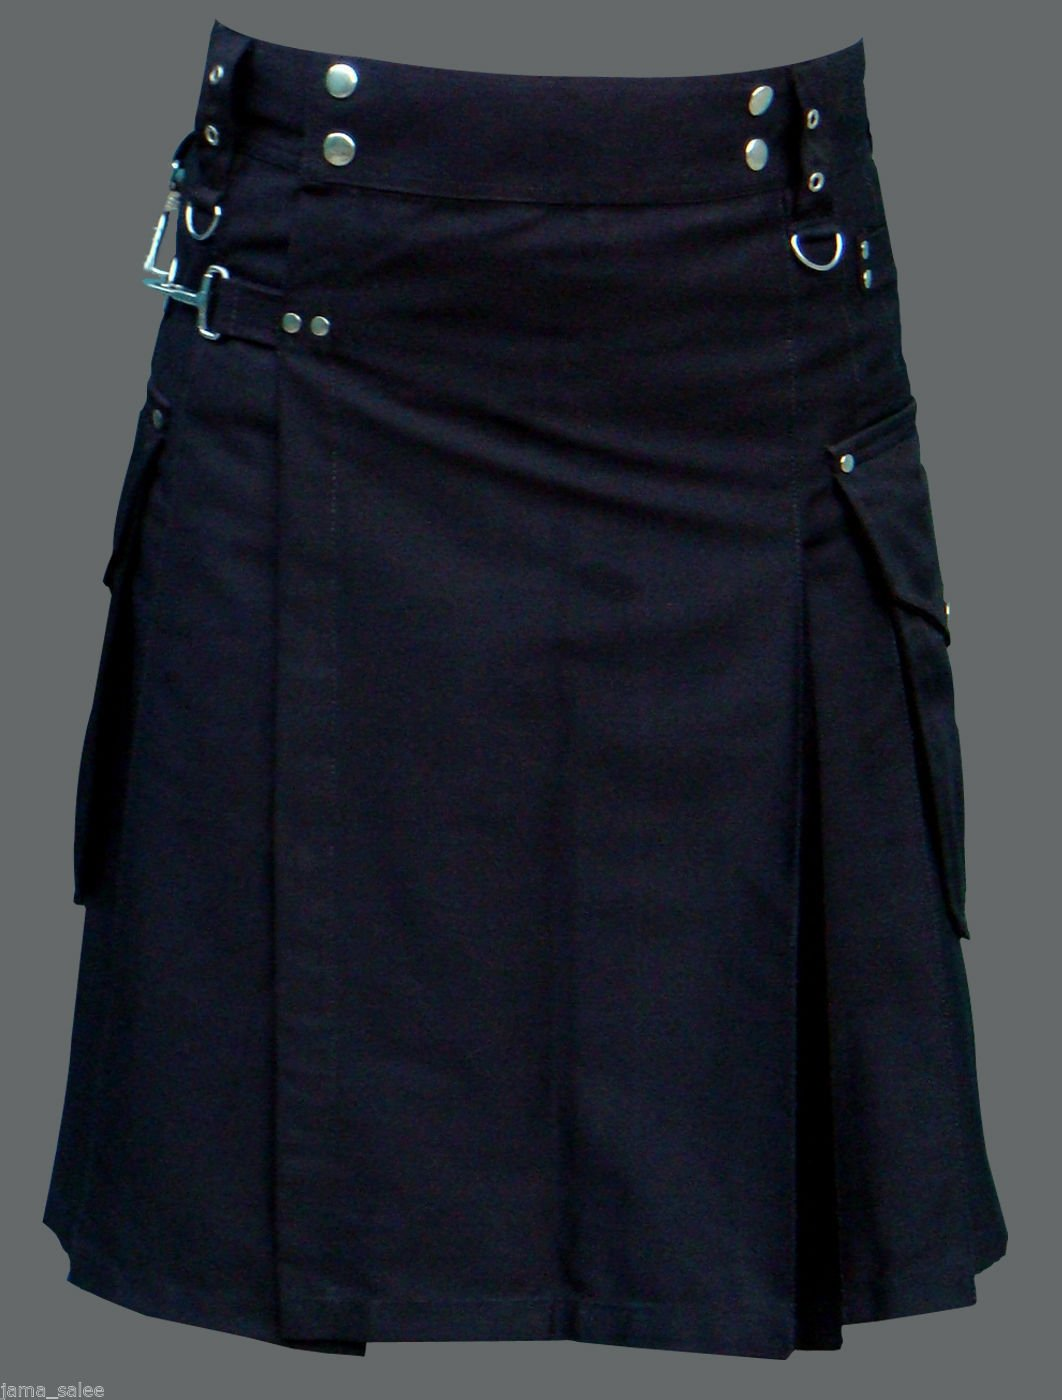 Deluxe Black Cotton Kilt Handmade Utility Gothic Modern Kilt with Cargo Pockets Waist Size 28 to Fit